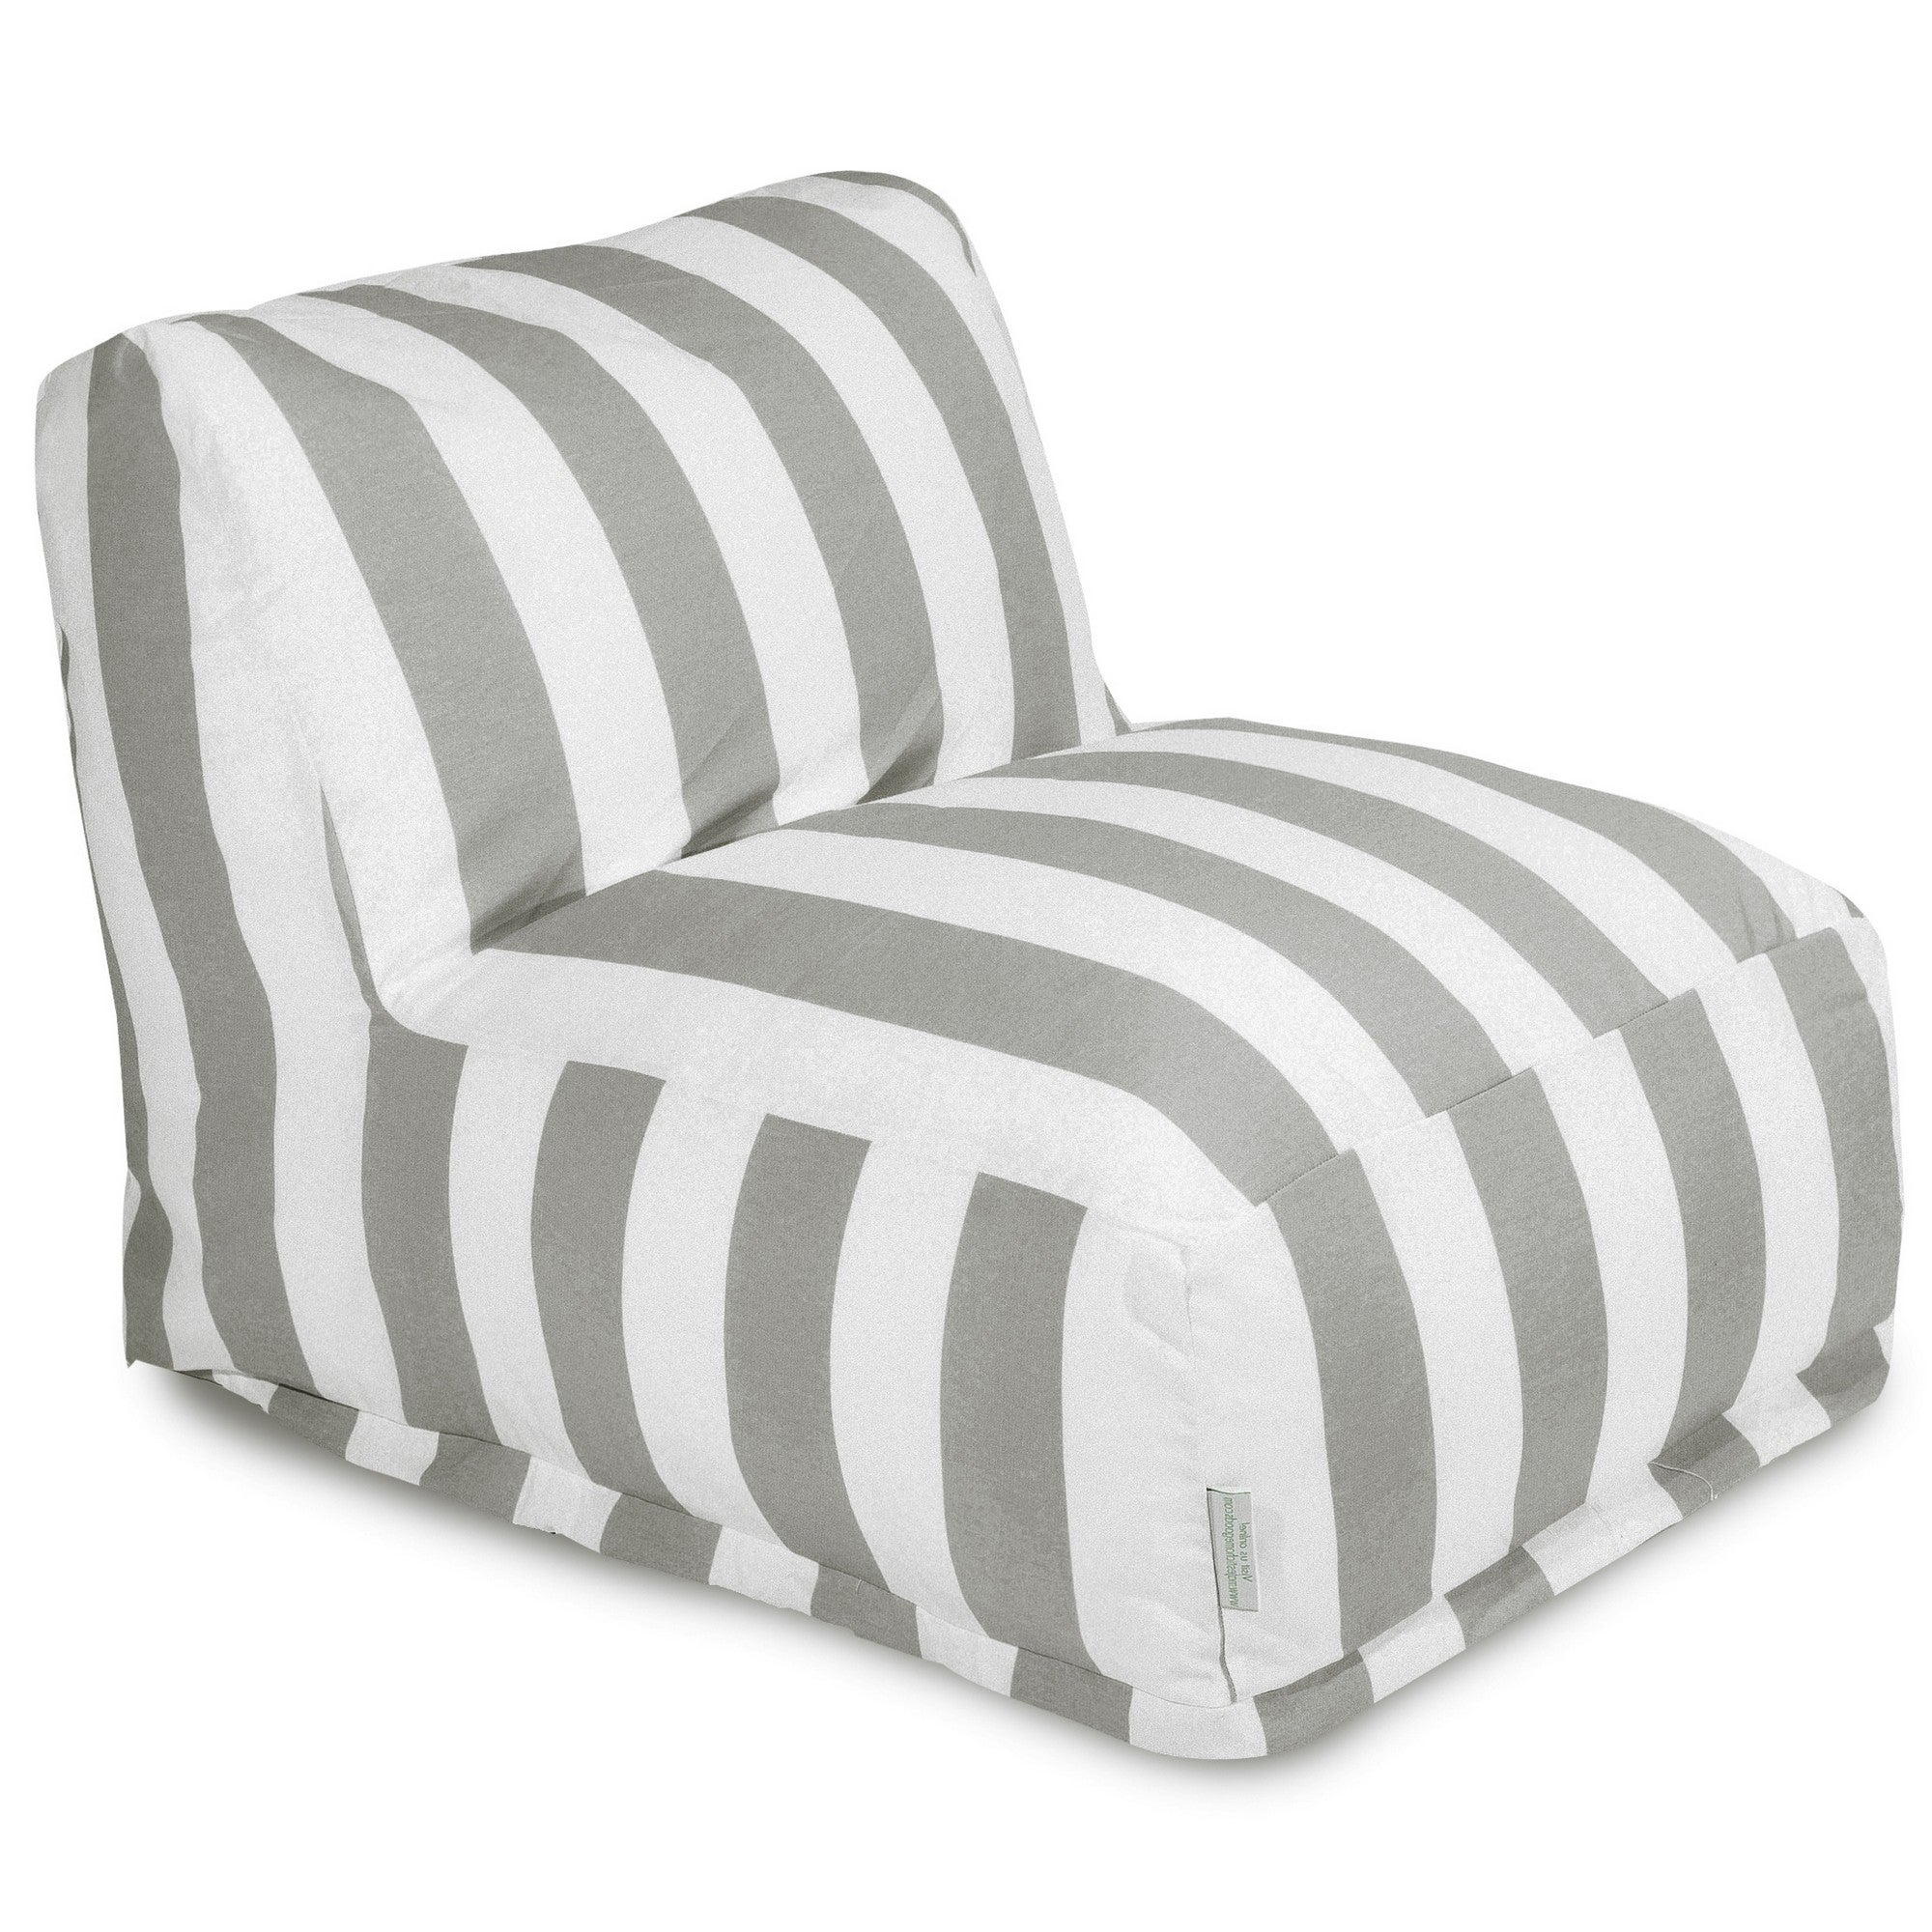 Most Current Indoor/outdoor Vertical Stripe Bean Bag Chair Loungers Inside Majestic Home Goods Indoor Outdoor Vertical Stripe Bean Bag Chair Lounger  36 In L X 27 In W X 24 In H (View 1 of 25)